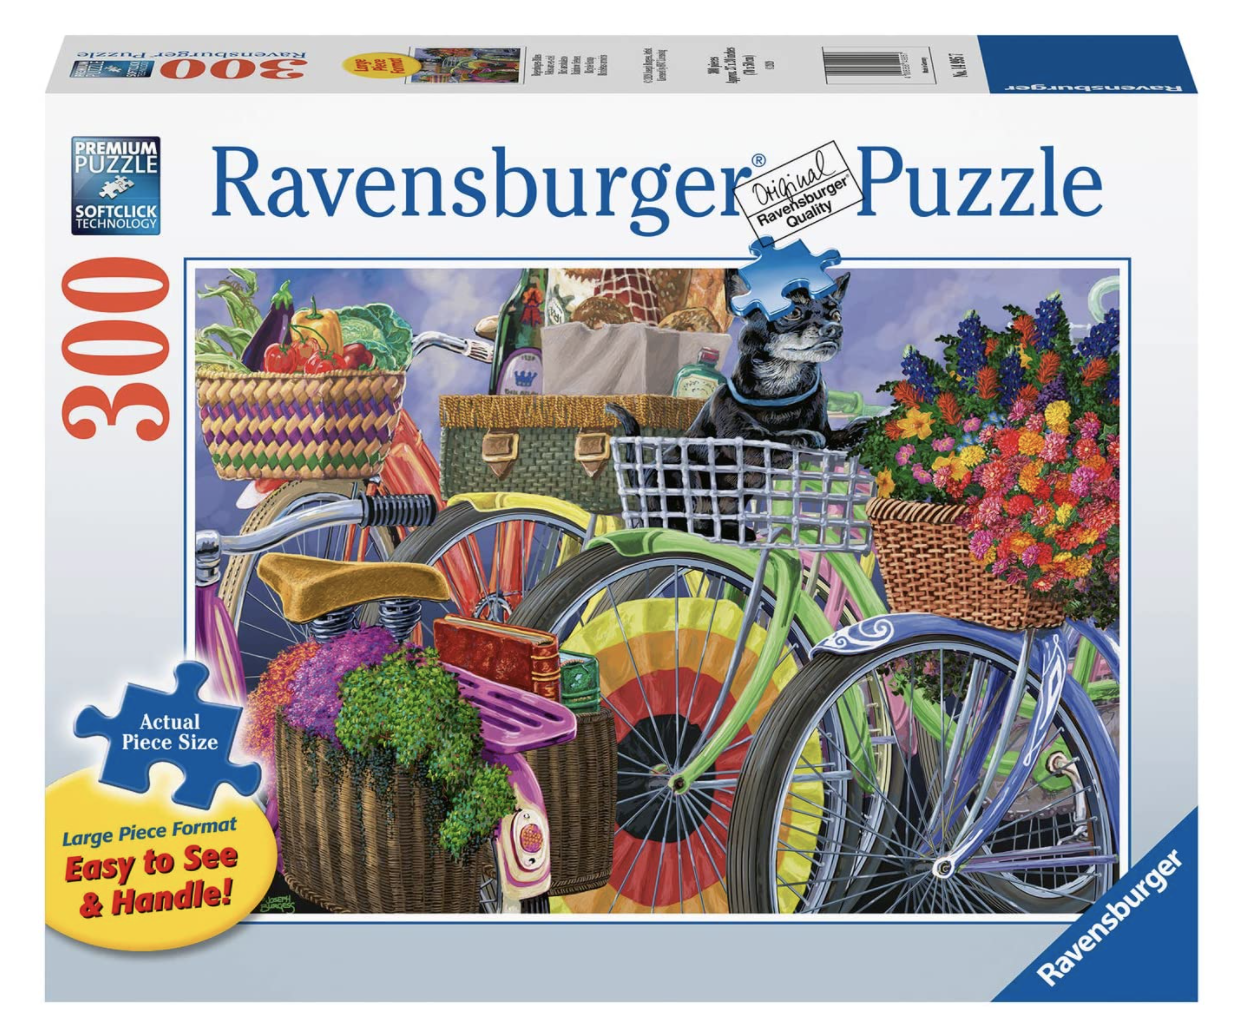 Bicycle Group 300 Piece Large Pieces Puzzle by Ravensburger